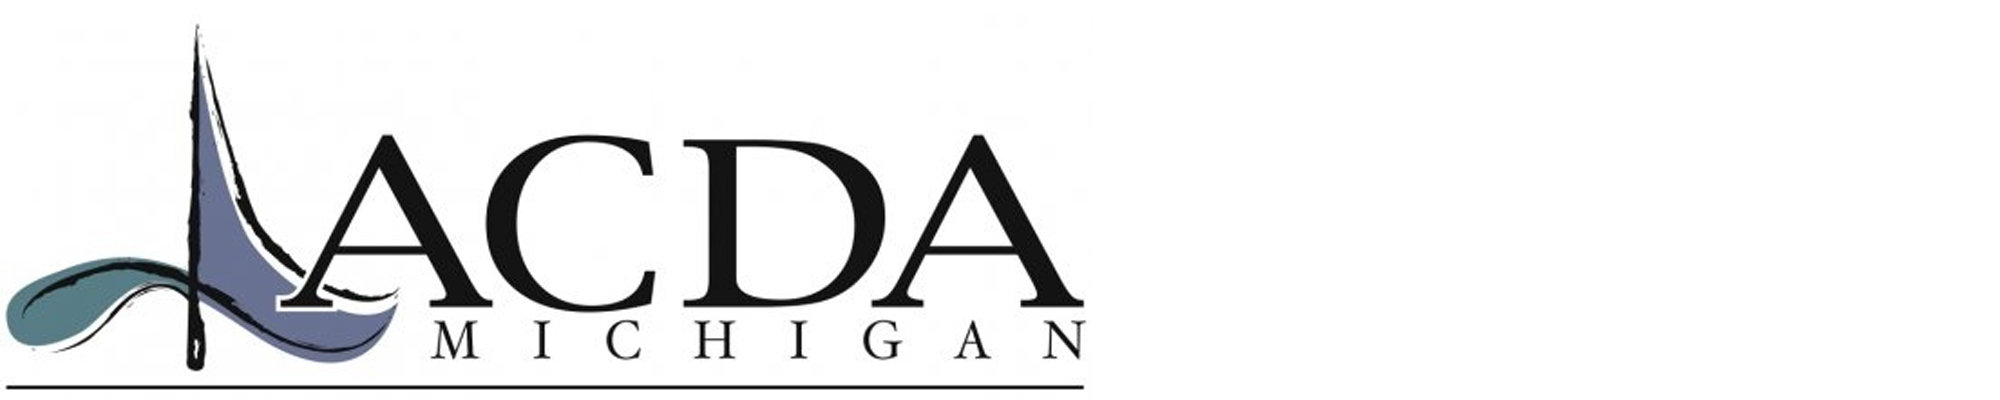 ACDA Michigan